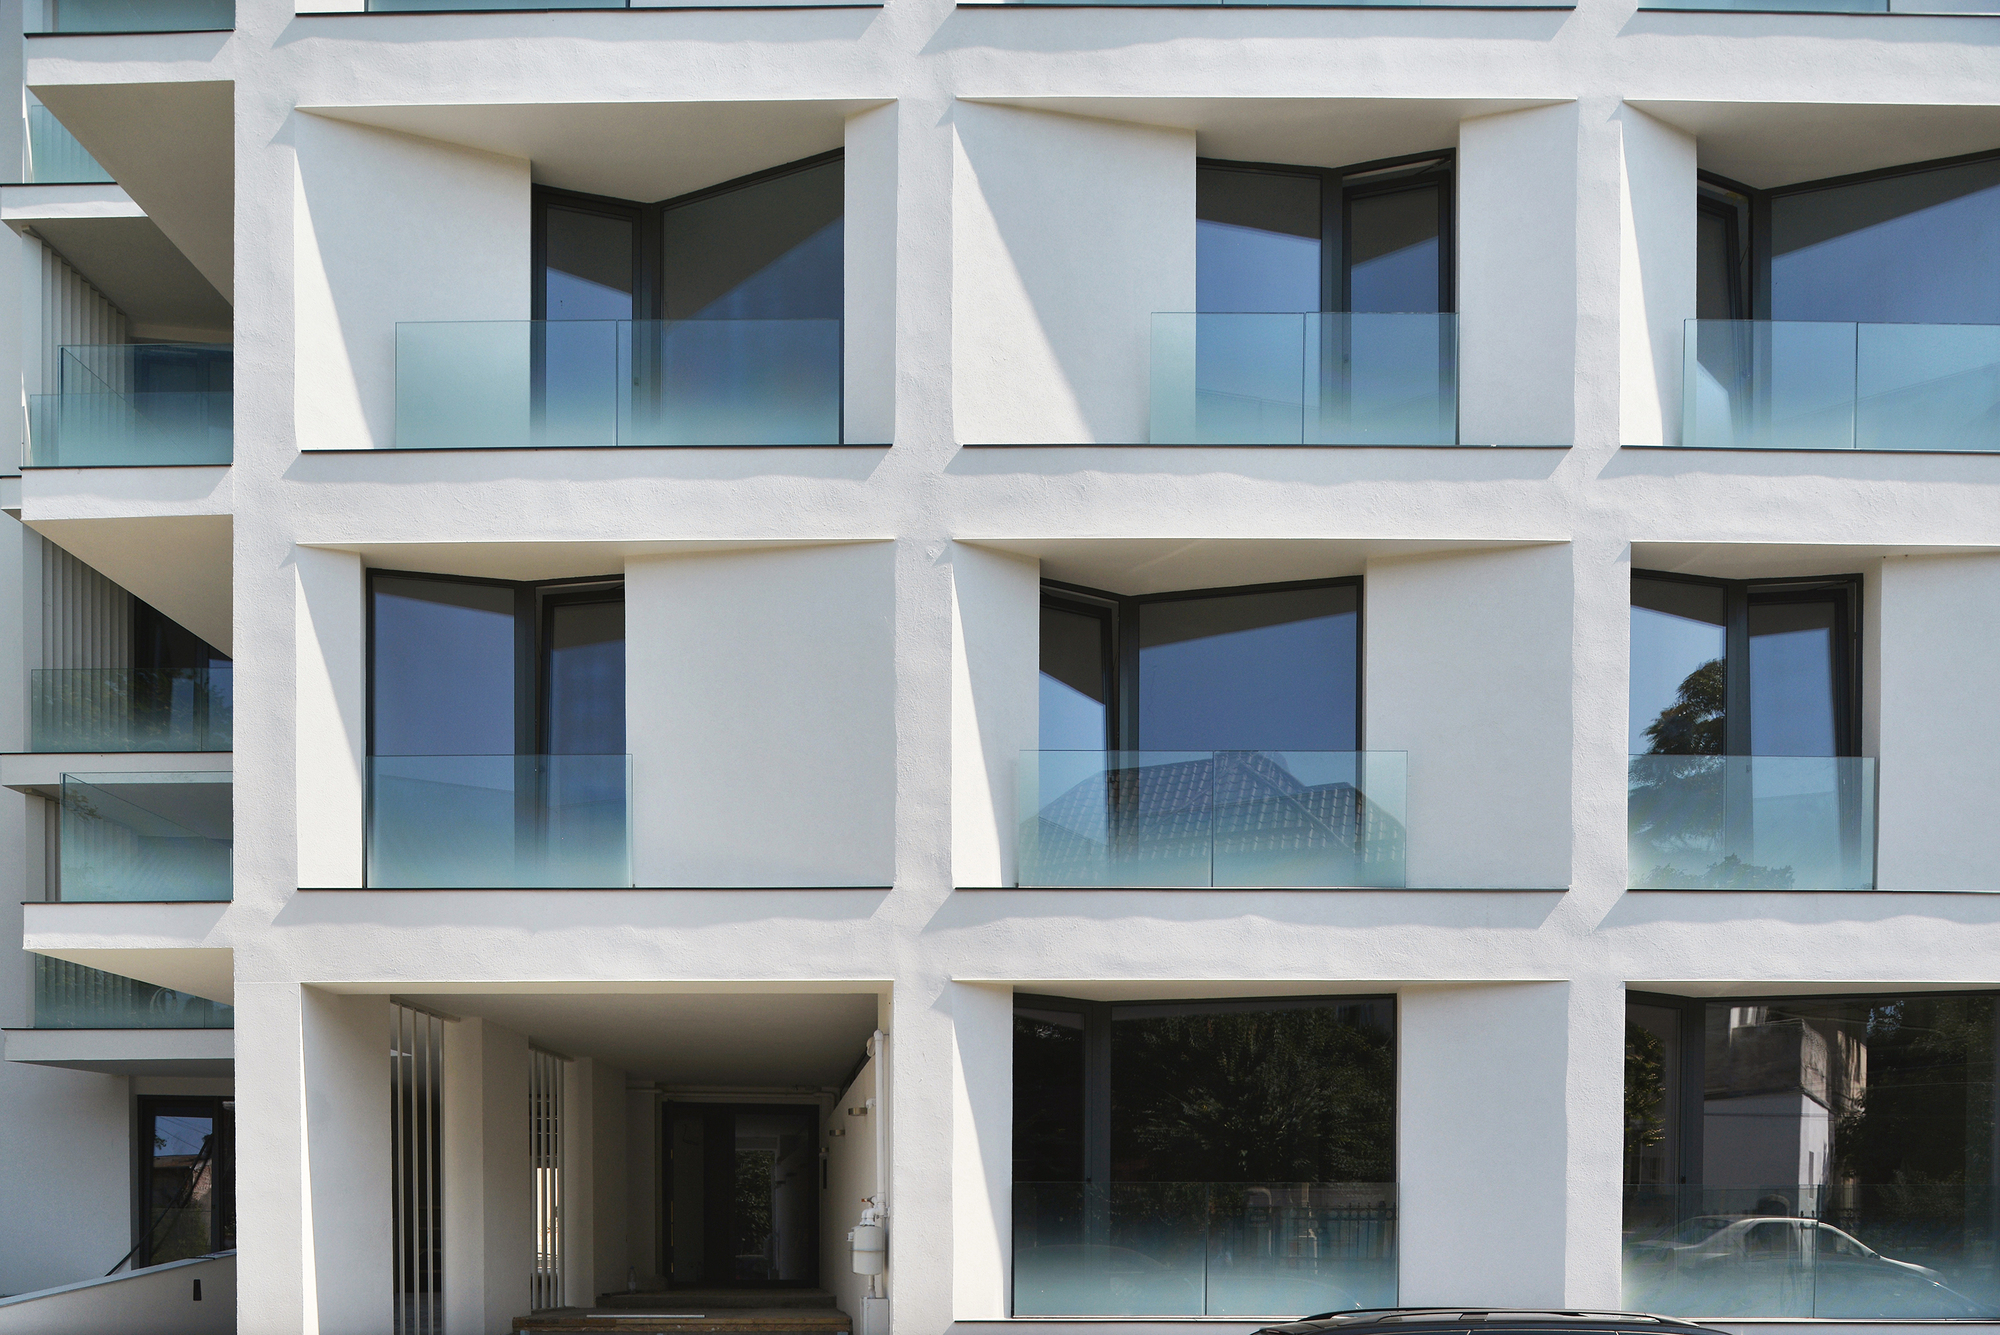 Architecture Projects in Romania   ArchDaily